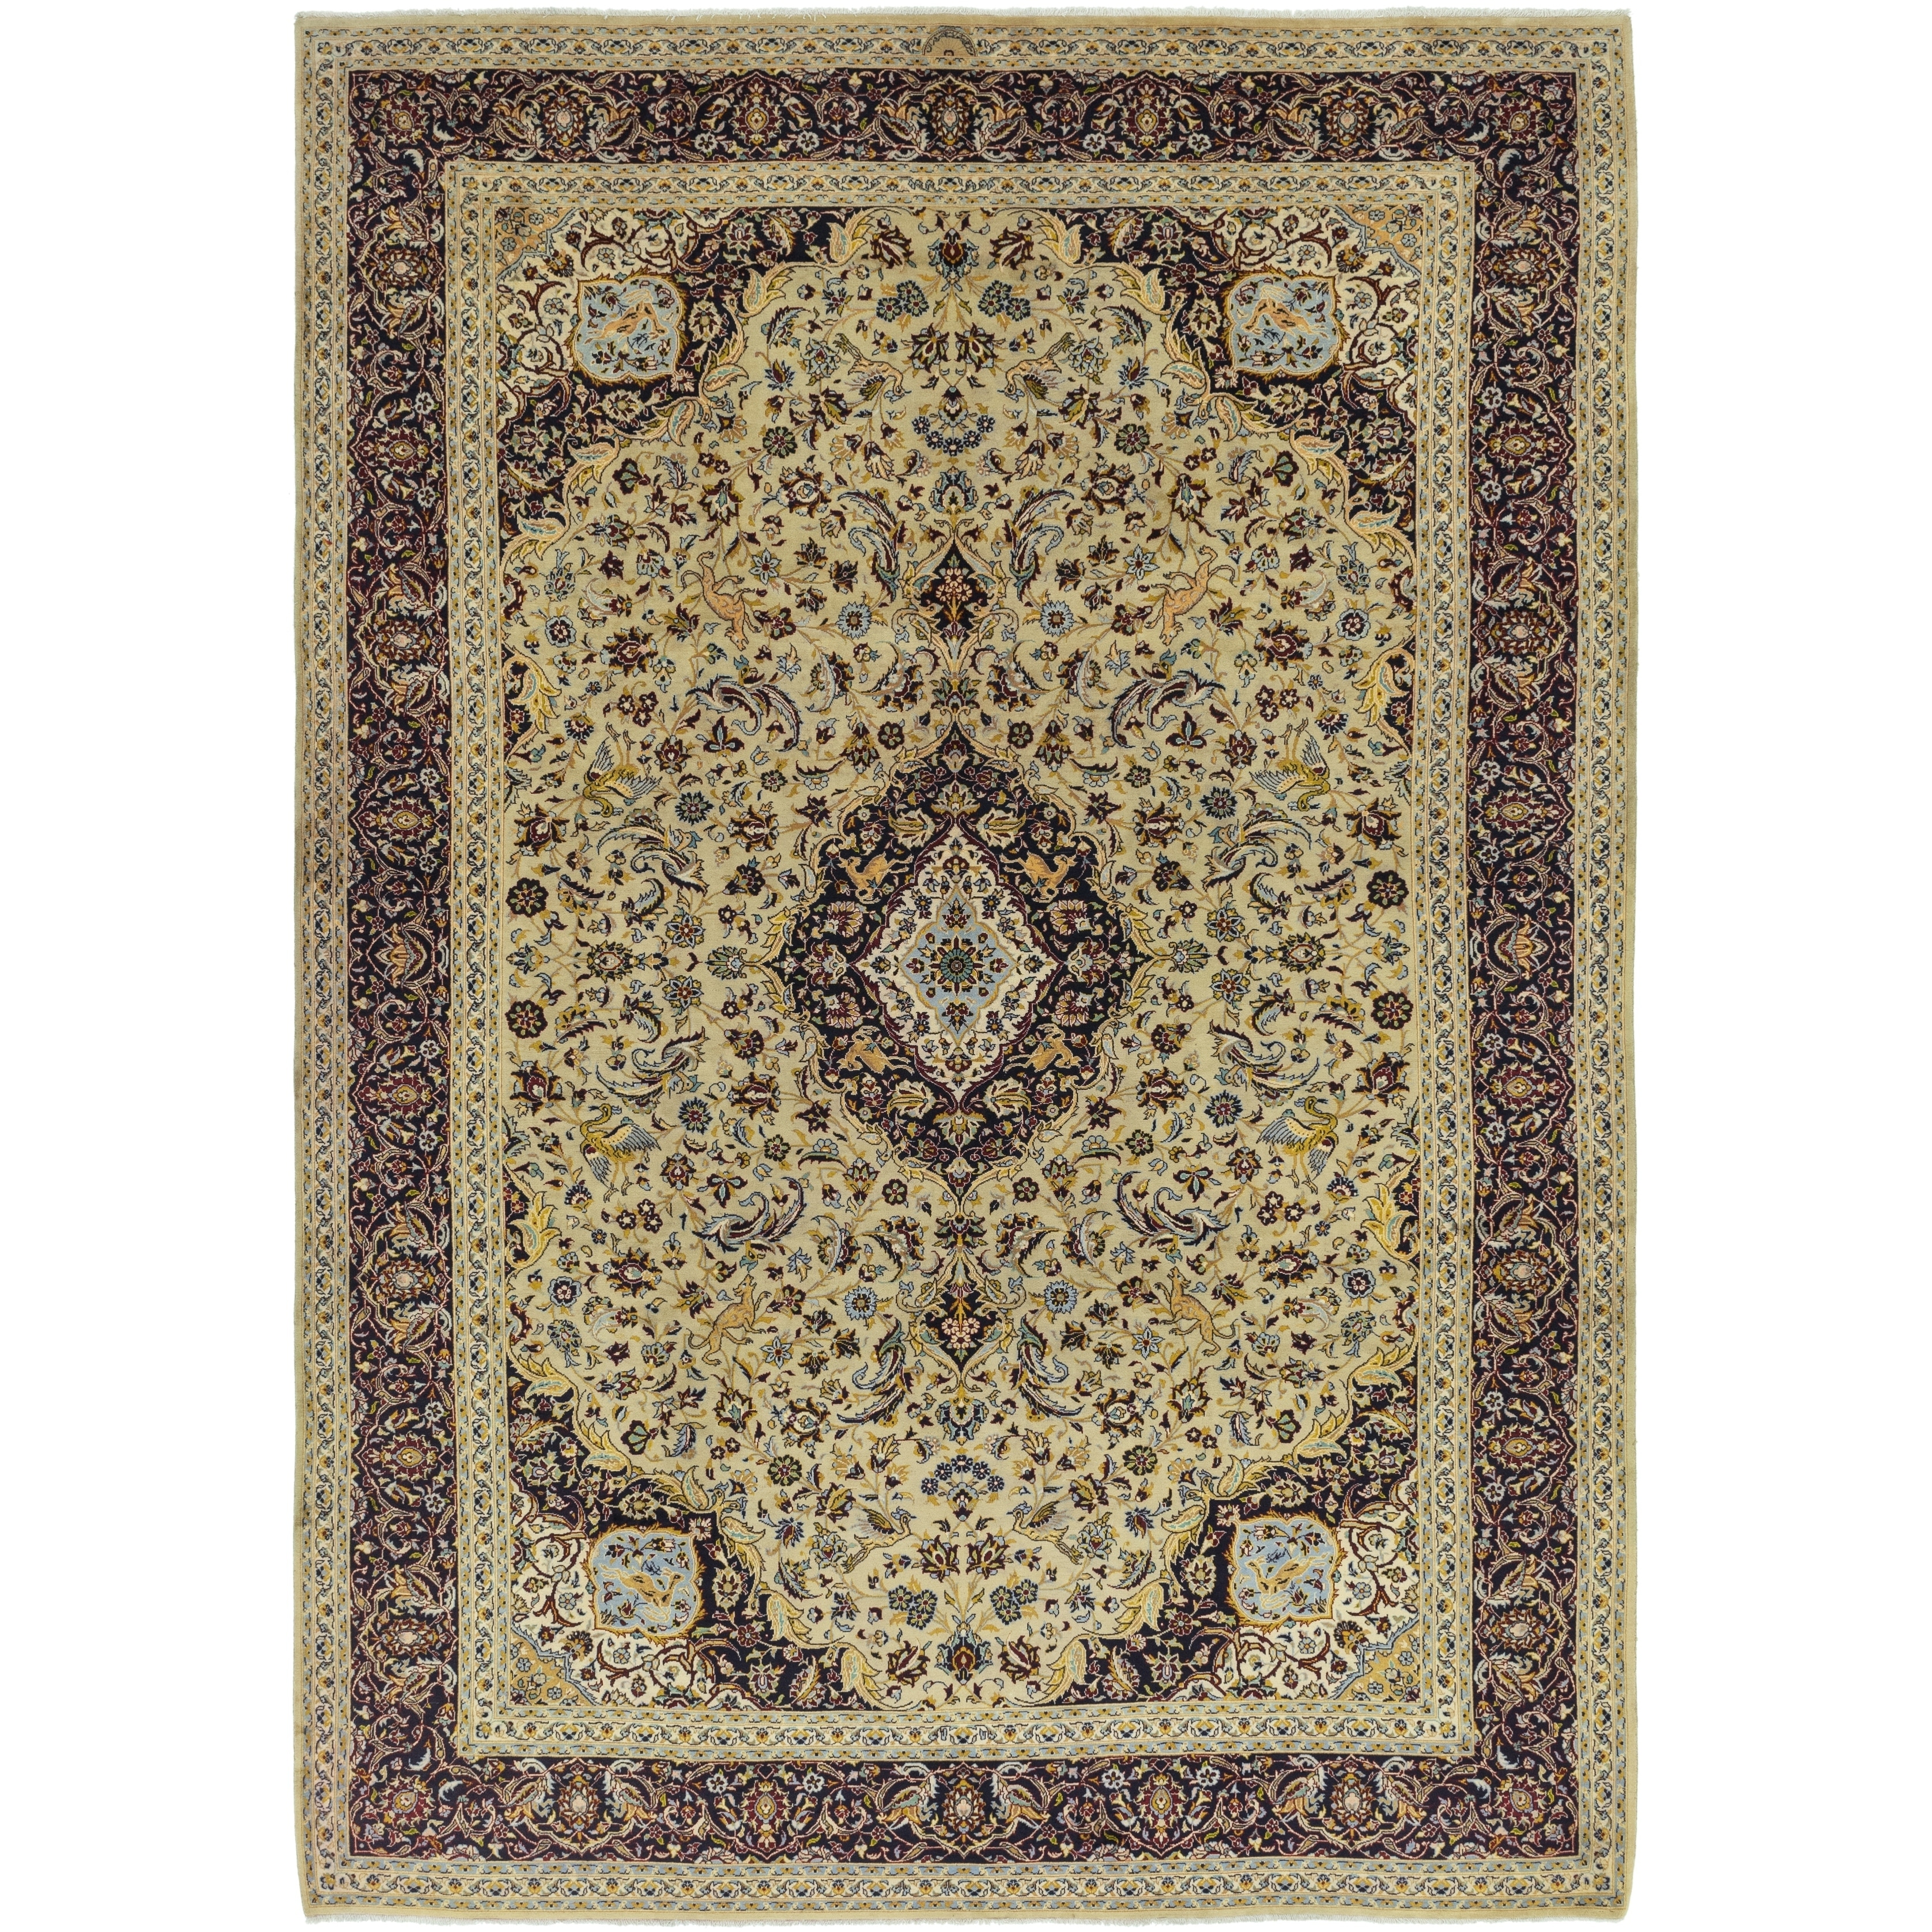 Hand Knotted Kashan Semi Antique Wool Area Rug - 9 8 x 13 9 (Tan - 9 8 x 13 9)